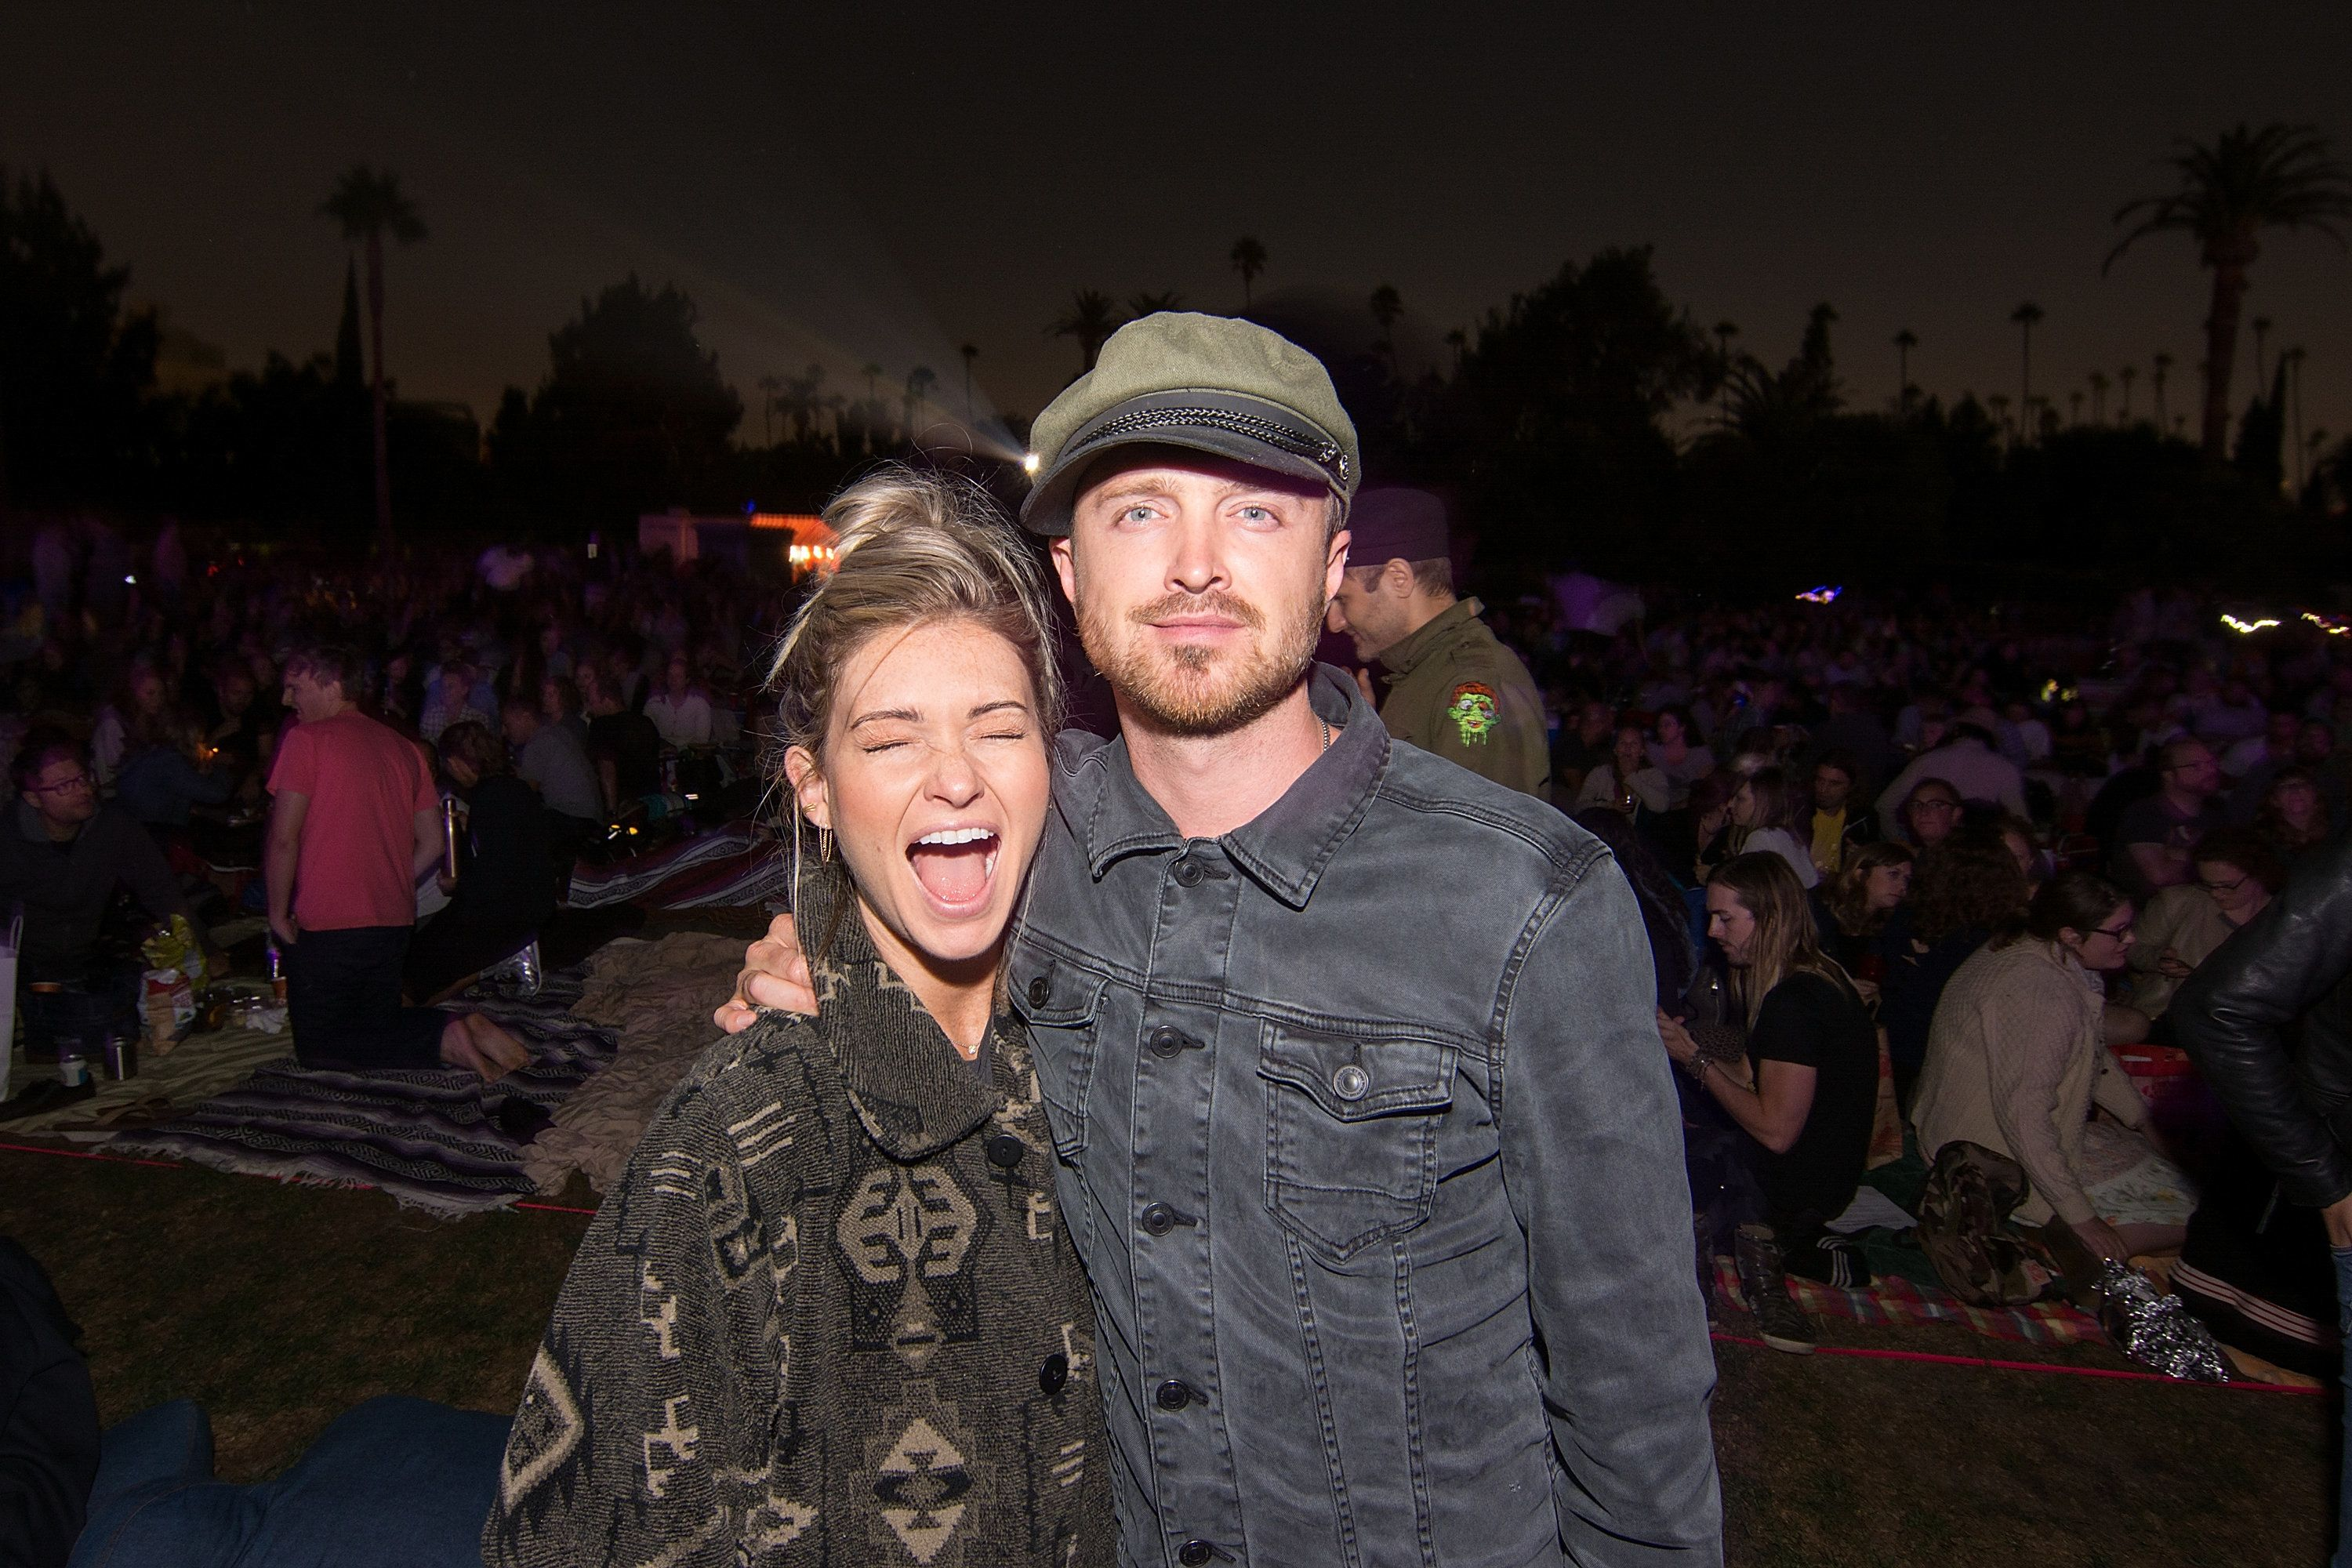 HOLLYWOOD, CA - AUGUST 20:  Aaron Paul and Lauren Parsekian attend Cinespia's screening of '2001: A Space Odyssey' held at Hollywood Forever on August 20, 2016 in Hollywood, California.  (Photo by Kelly Lee Barrett/Getty Images)